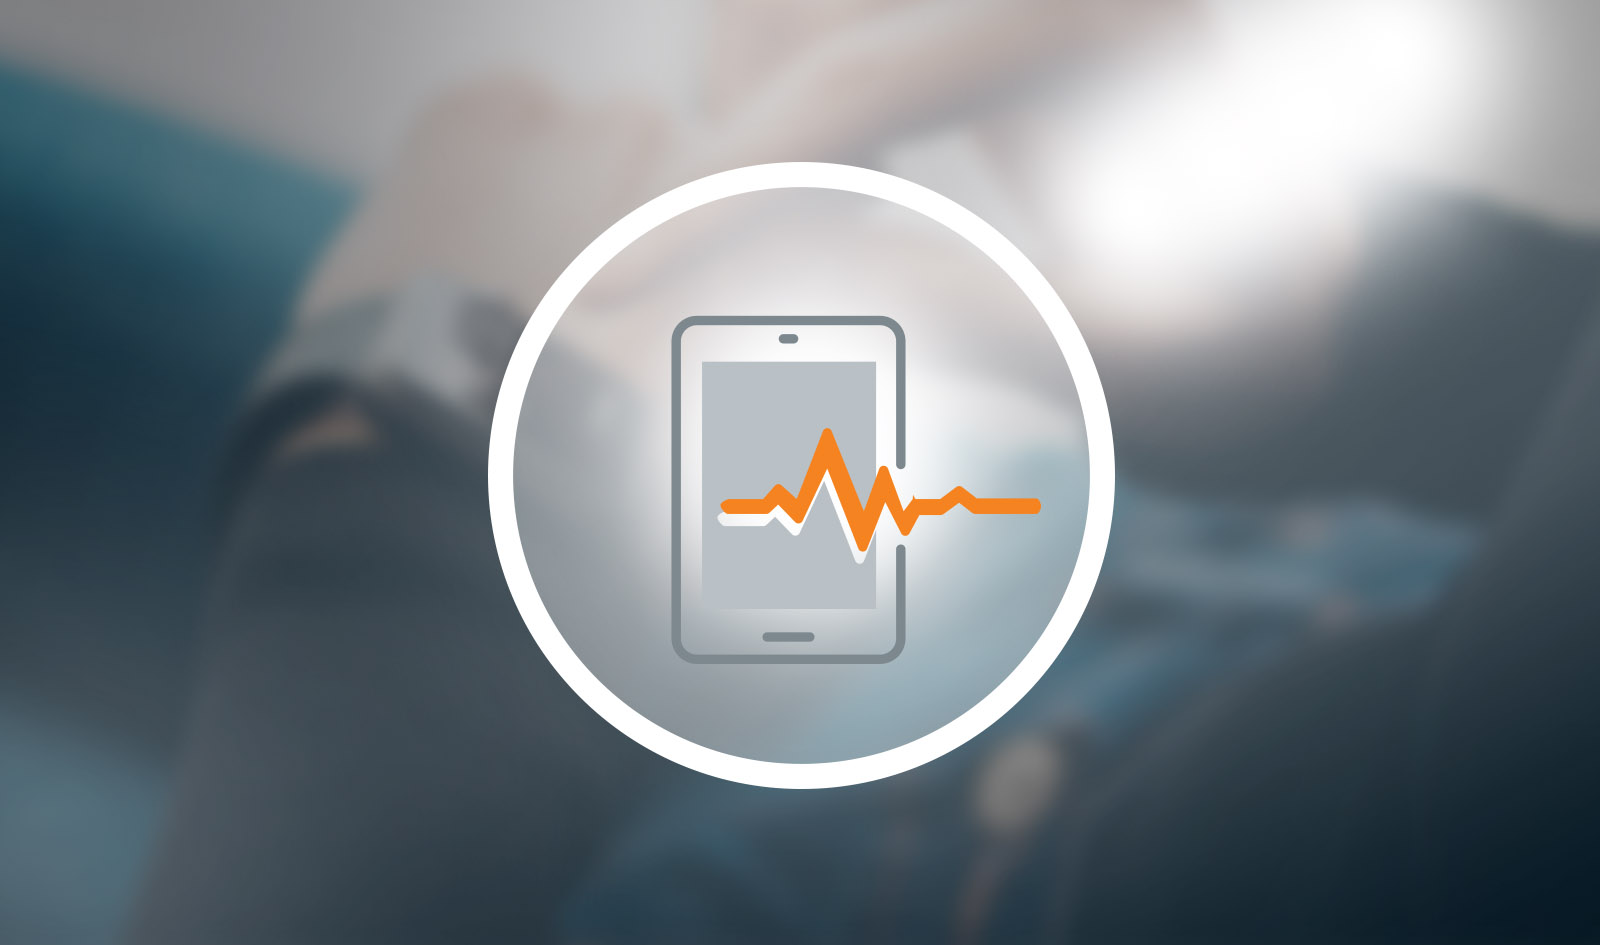 Healthcare IoT outpatient safety and security